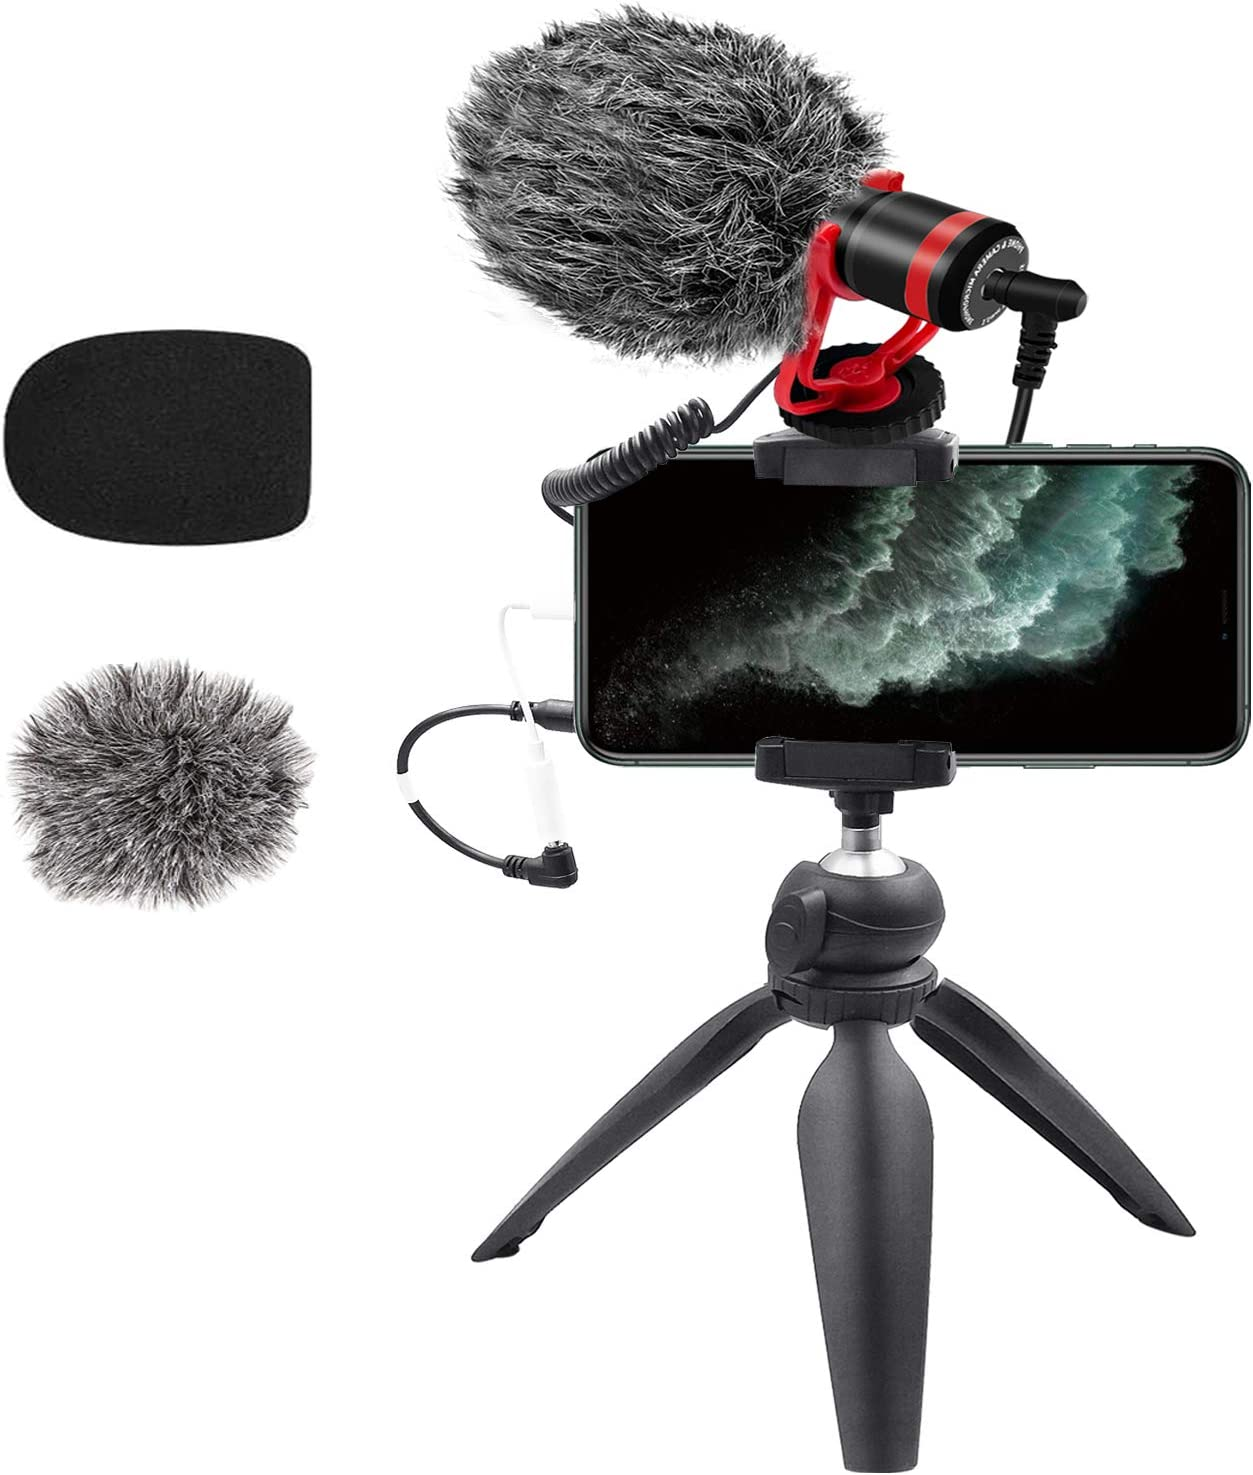 Microphone for iPhone Smartphone Camera Video Microphone Kit with Mini Tripod 3.5mm Jack External Mic for Canon Nikon DSLR Interview Android Samsung Vloging YouTube Asmr